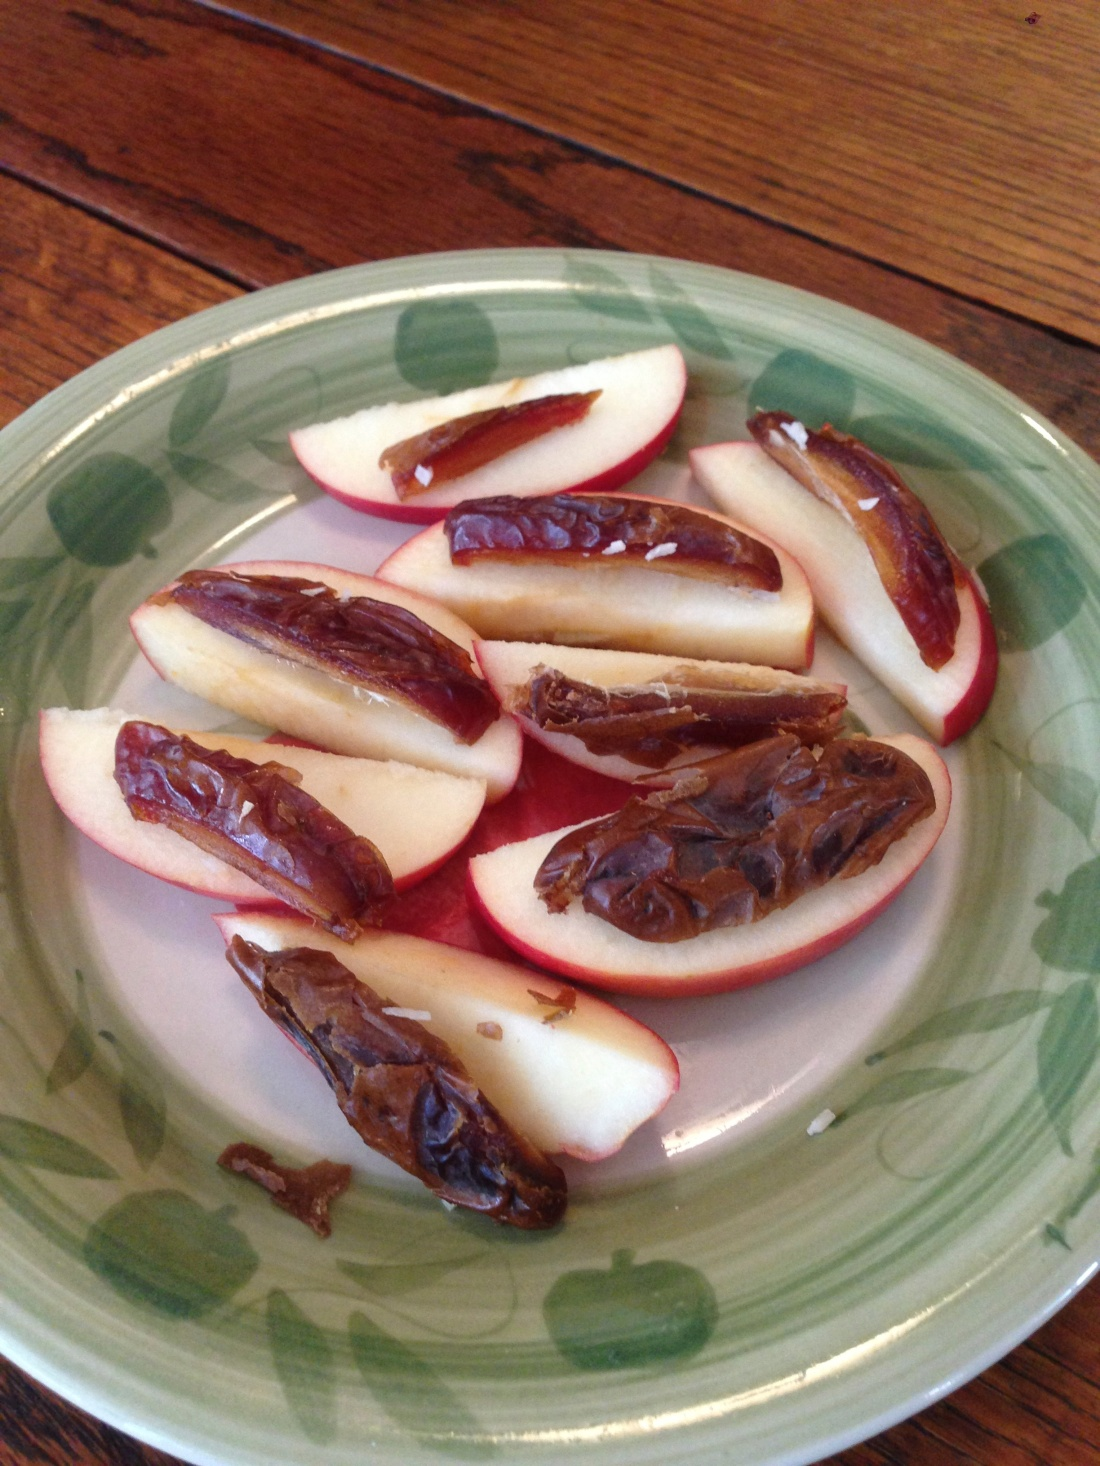 Sliced Apples and Medjool Dates